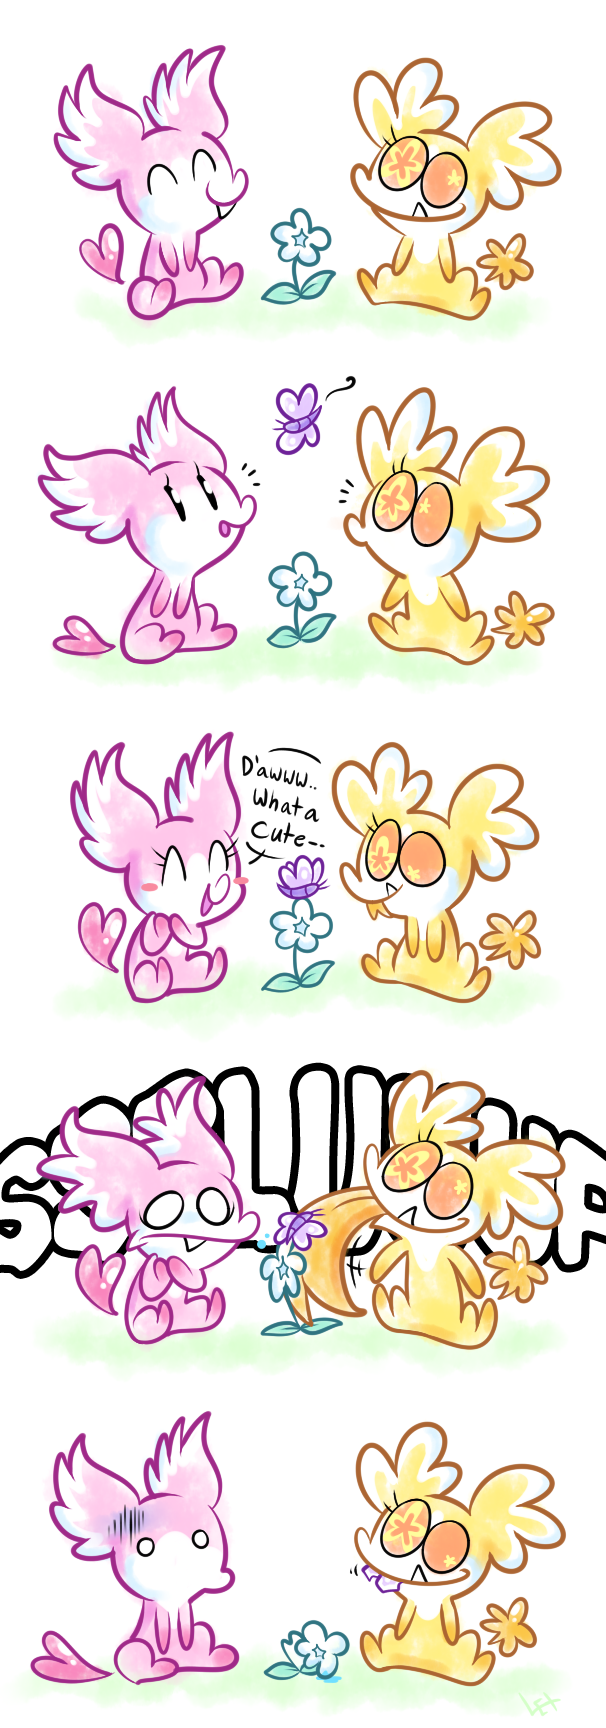 What a cute butterfly (comic)